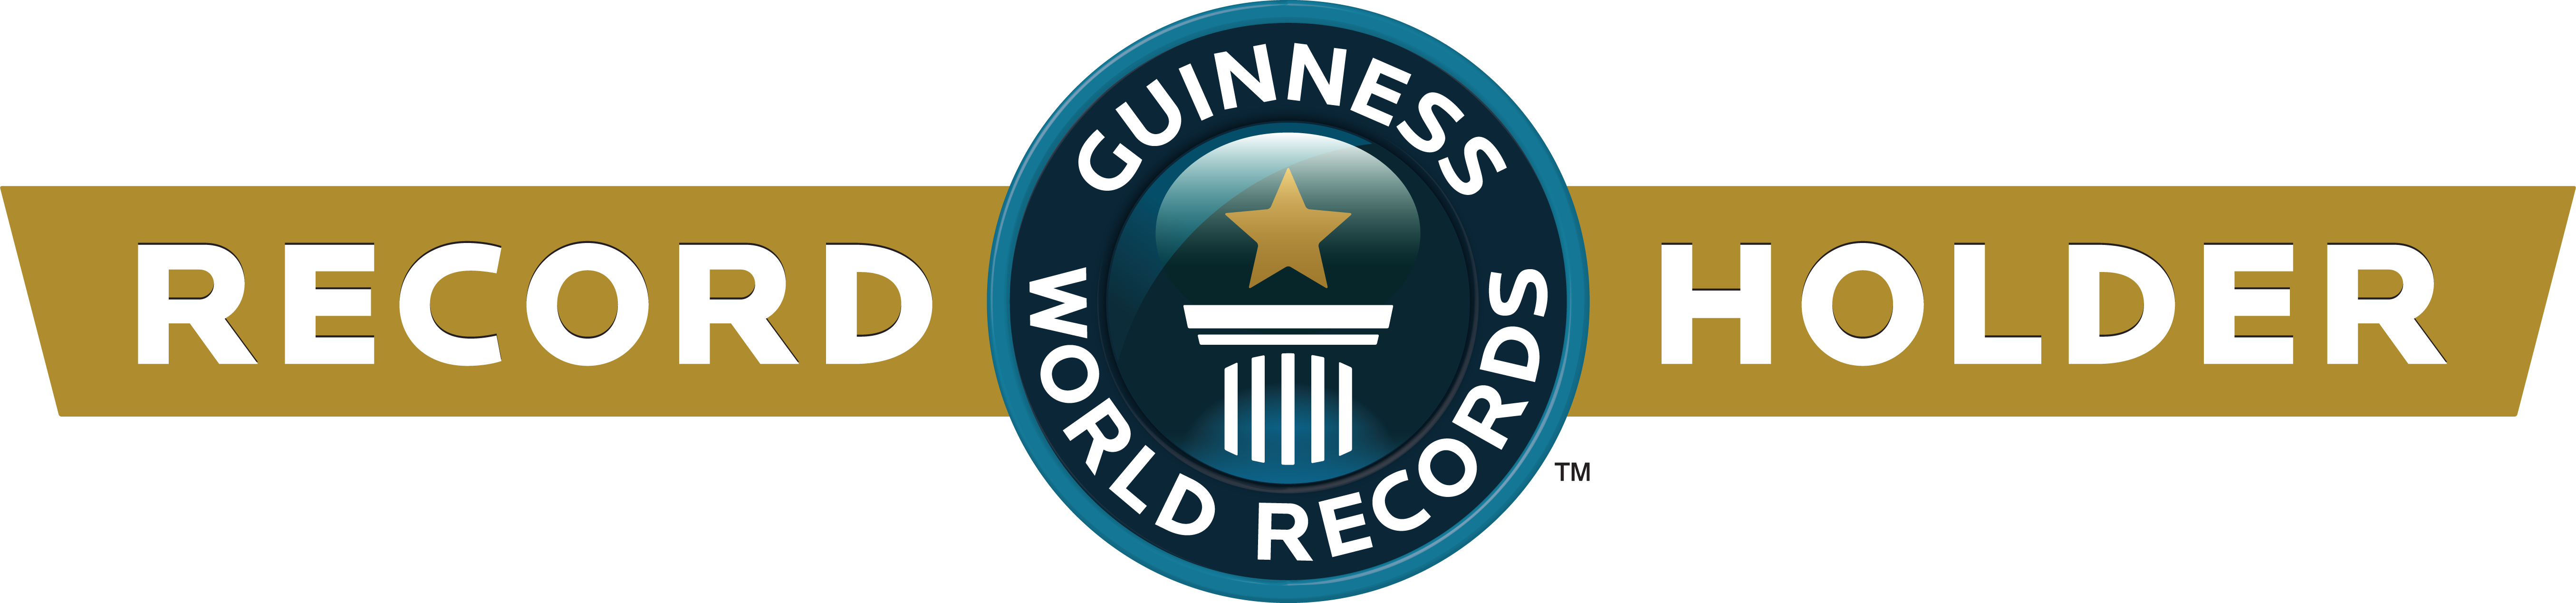 Guiness World Record Holder